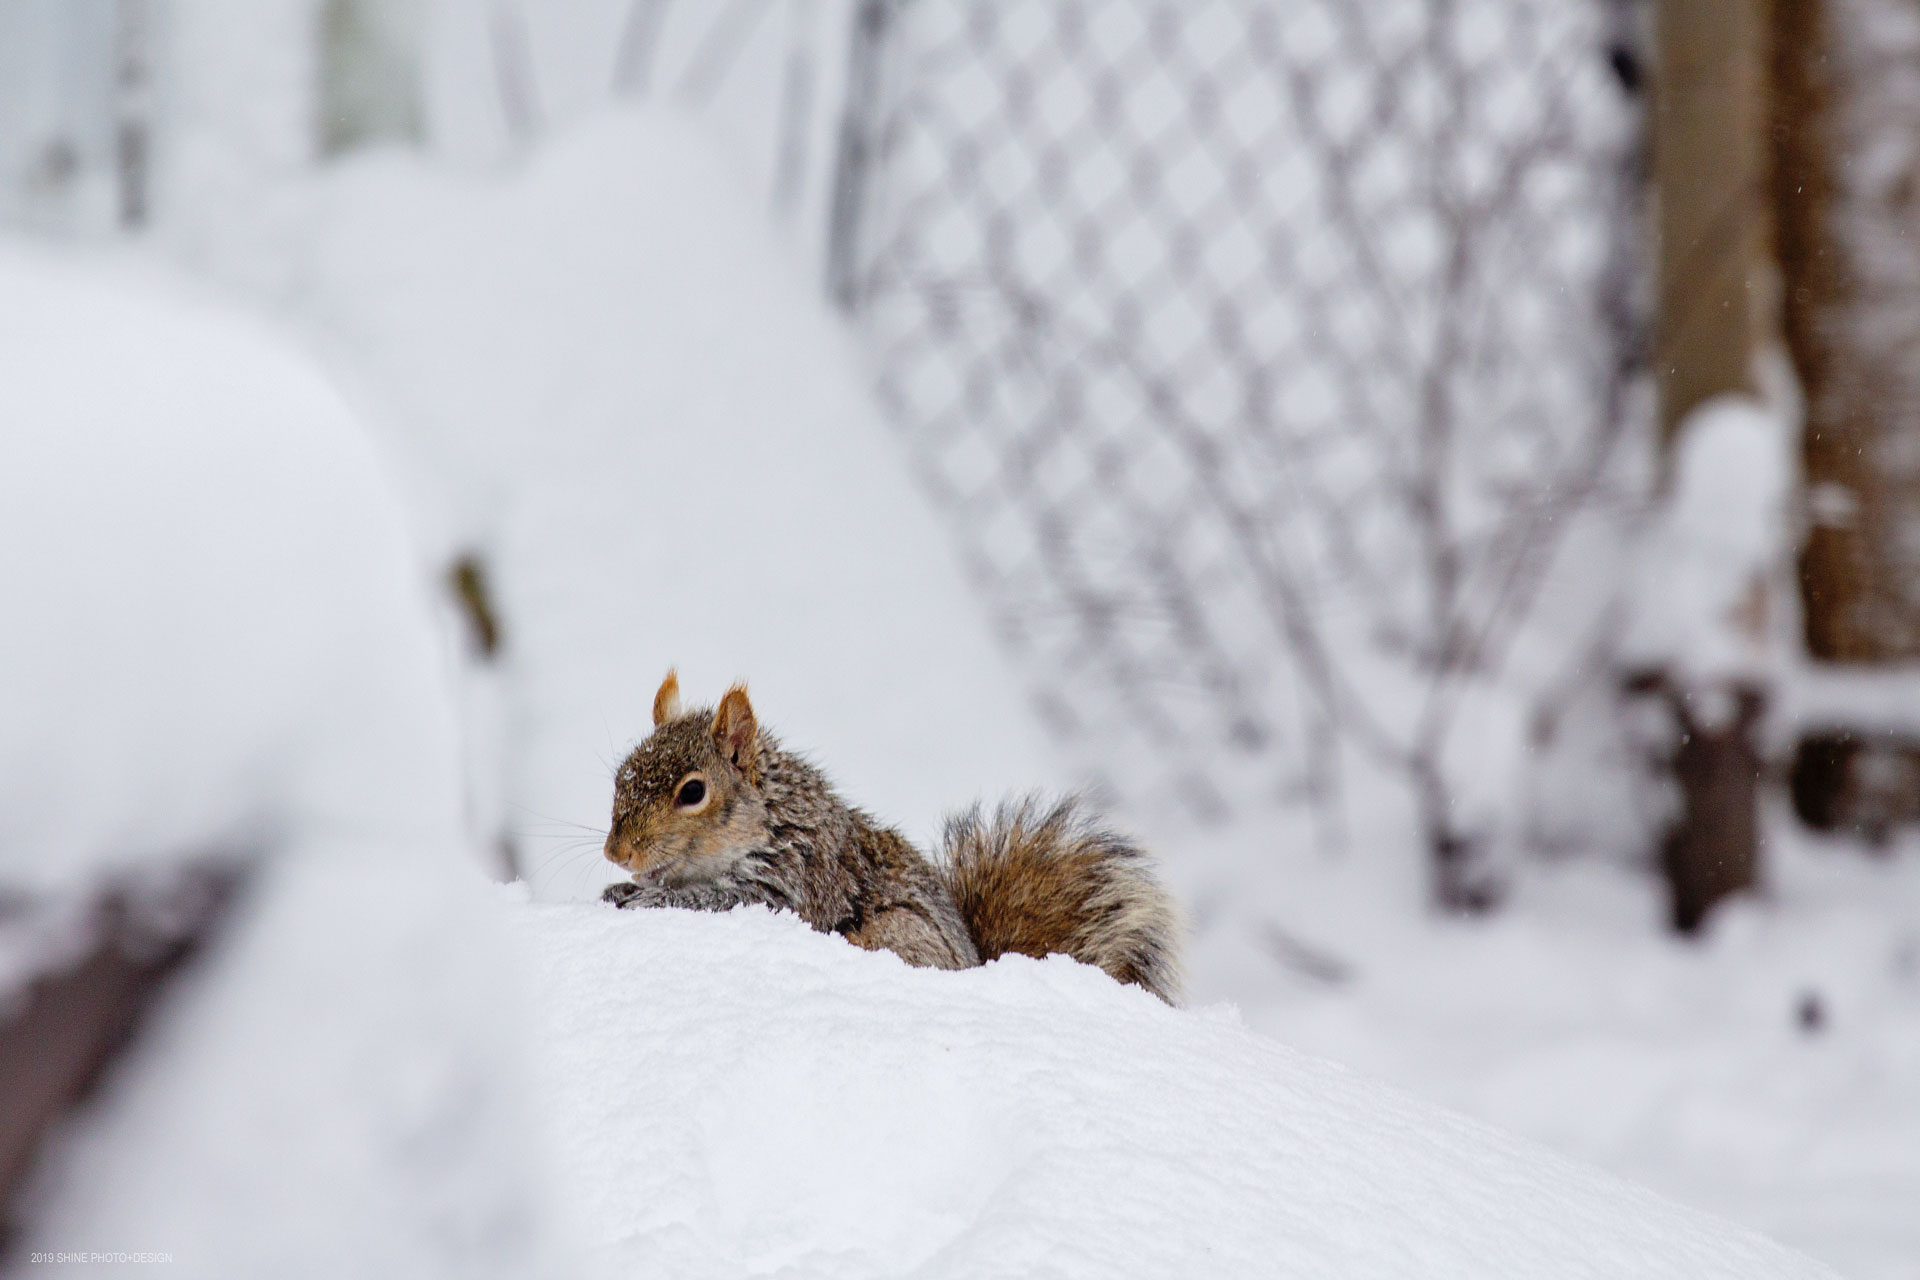 Winter Squirrel by Shine Photo Design